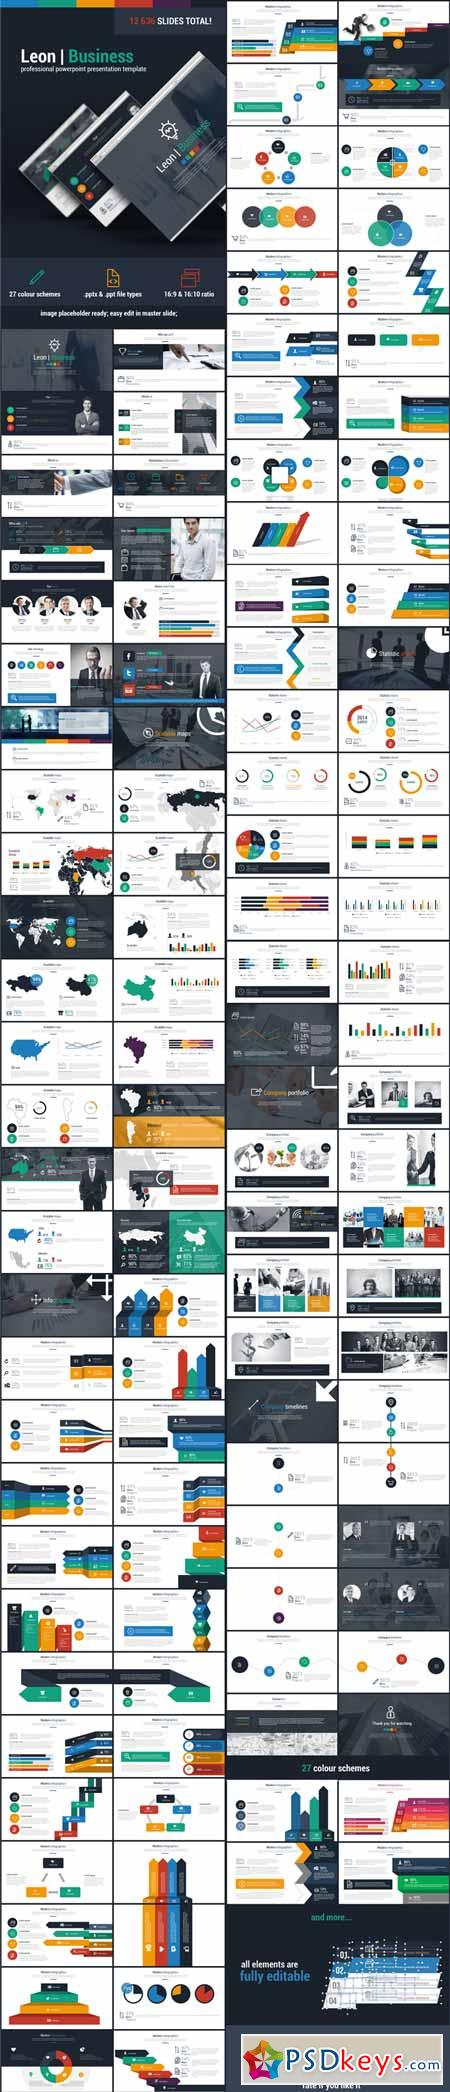 Leon Business Powerpoint Presentation Template 11084650